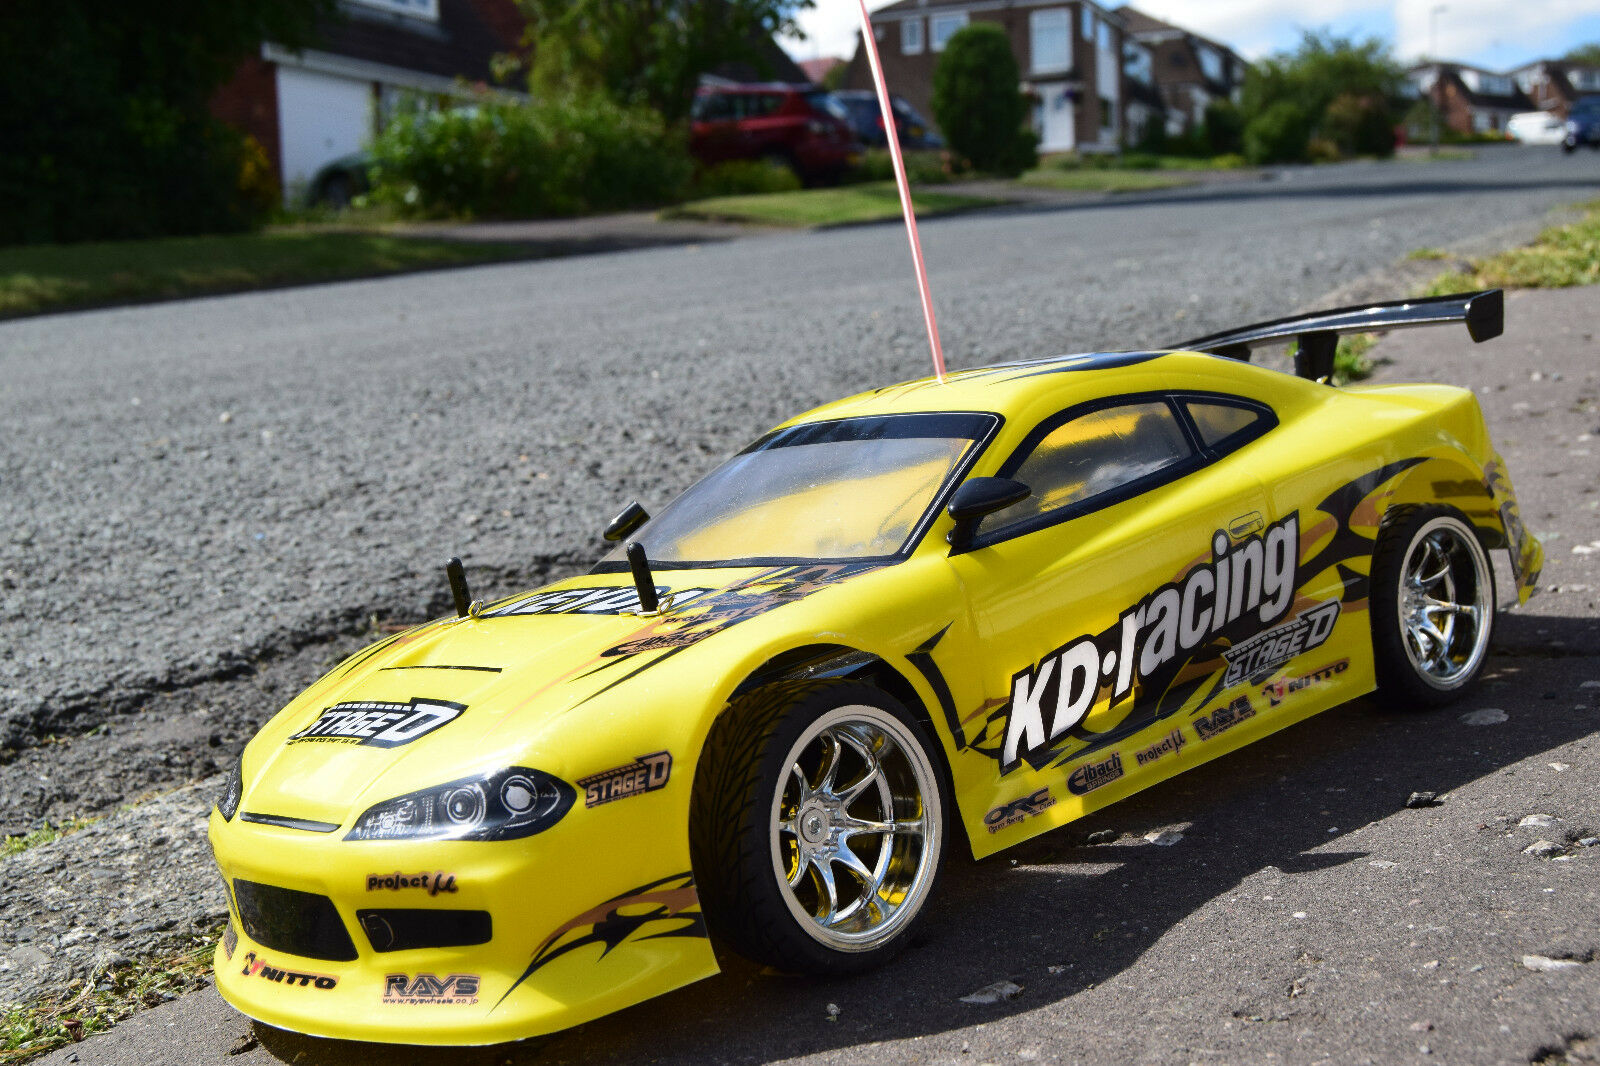 Nissan Skyline Radio Remote Control Car 1 10 Rechargeable KD Racing Car 20mph